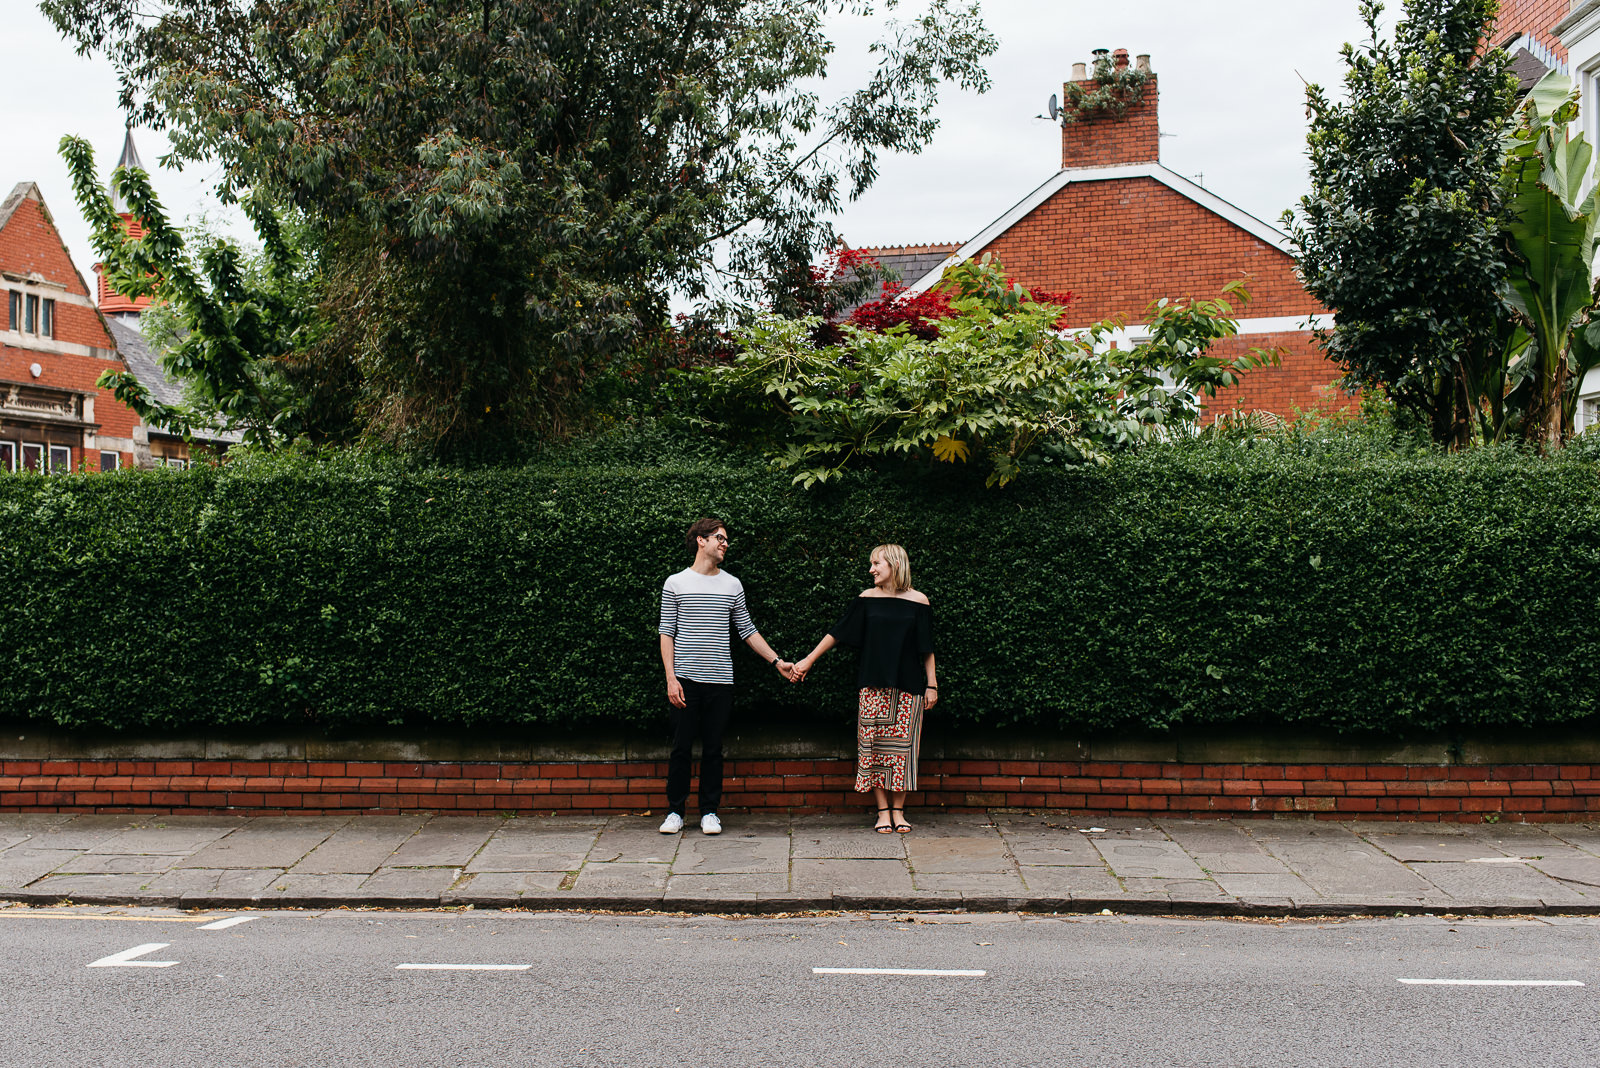 Urban engagement shoot Cardiff | Cardiff engagement photographer // Elaine Williams Photography